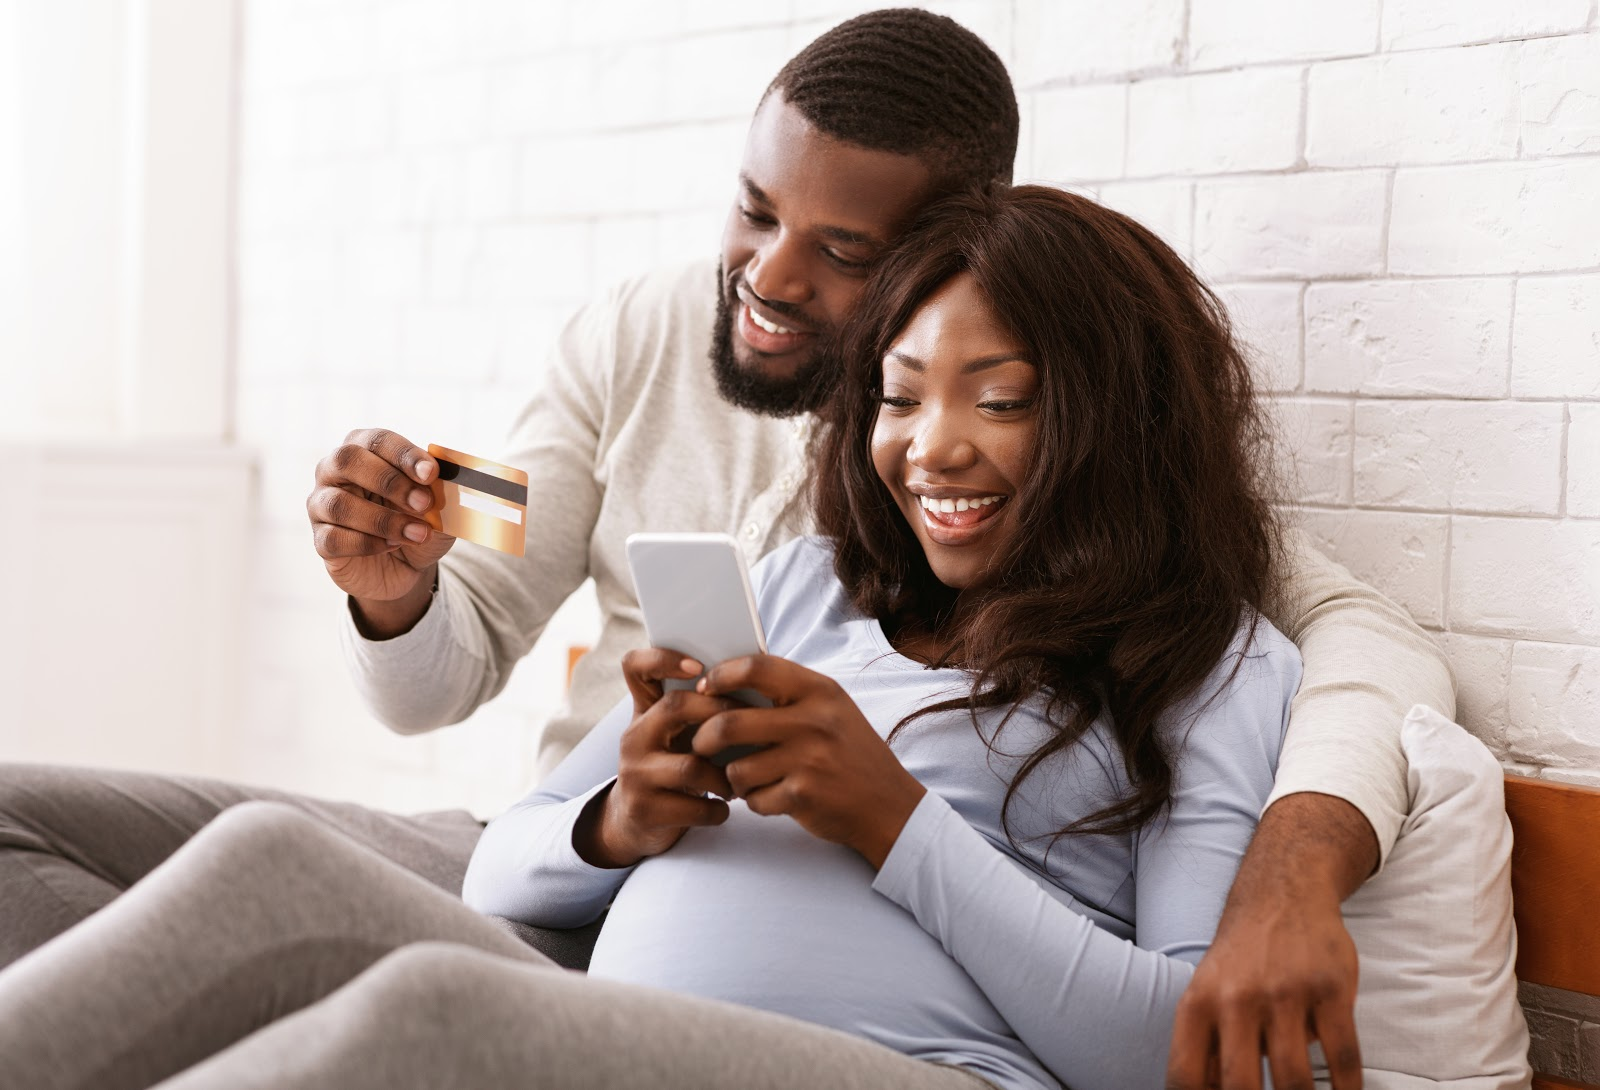 Happy expectant couple reviewing how to pay off debt